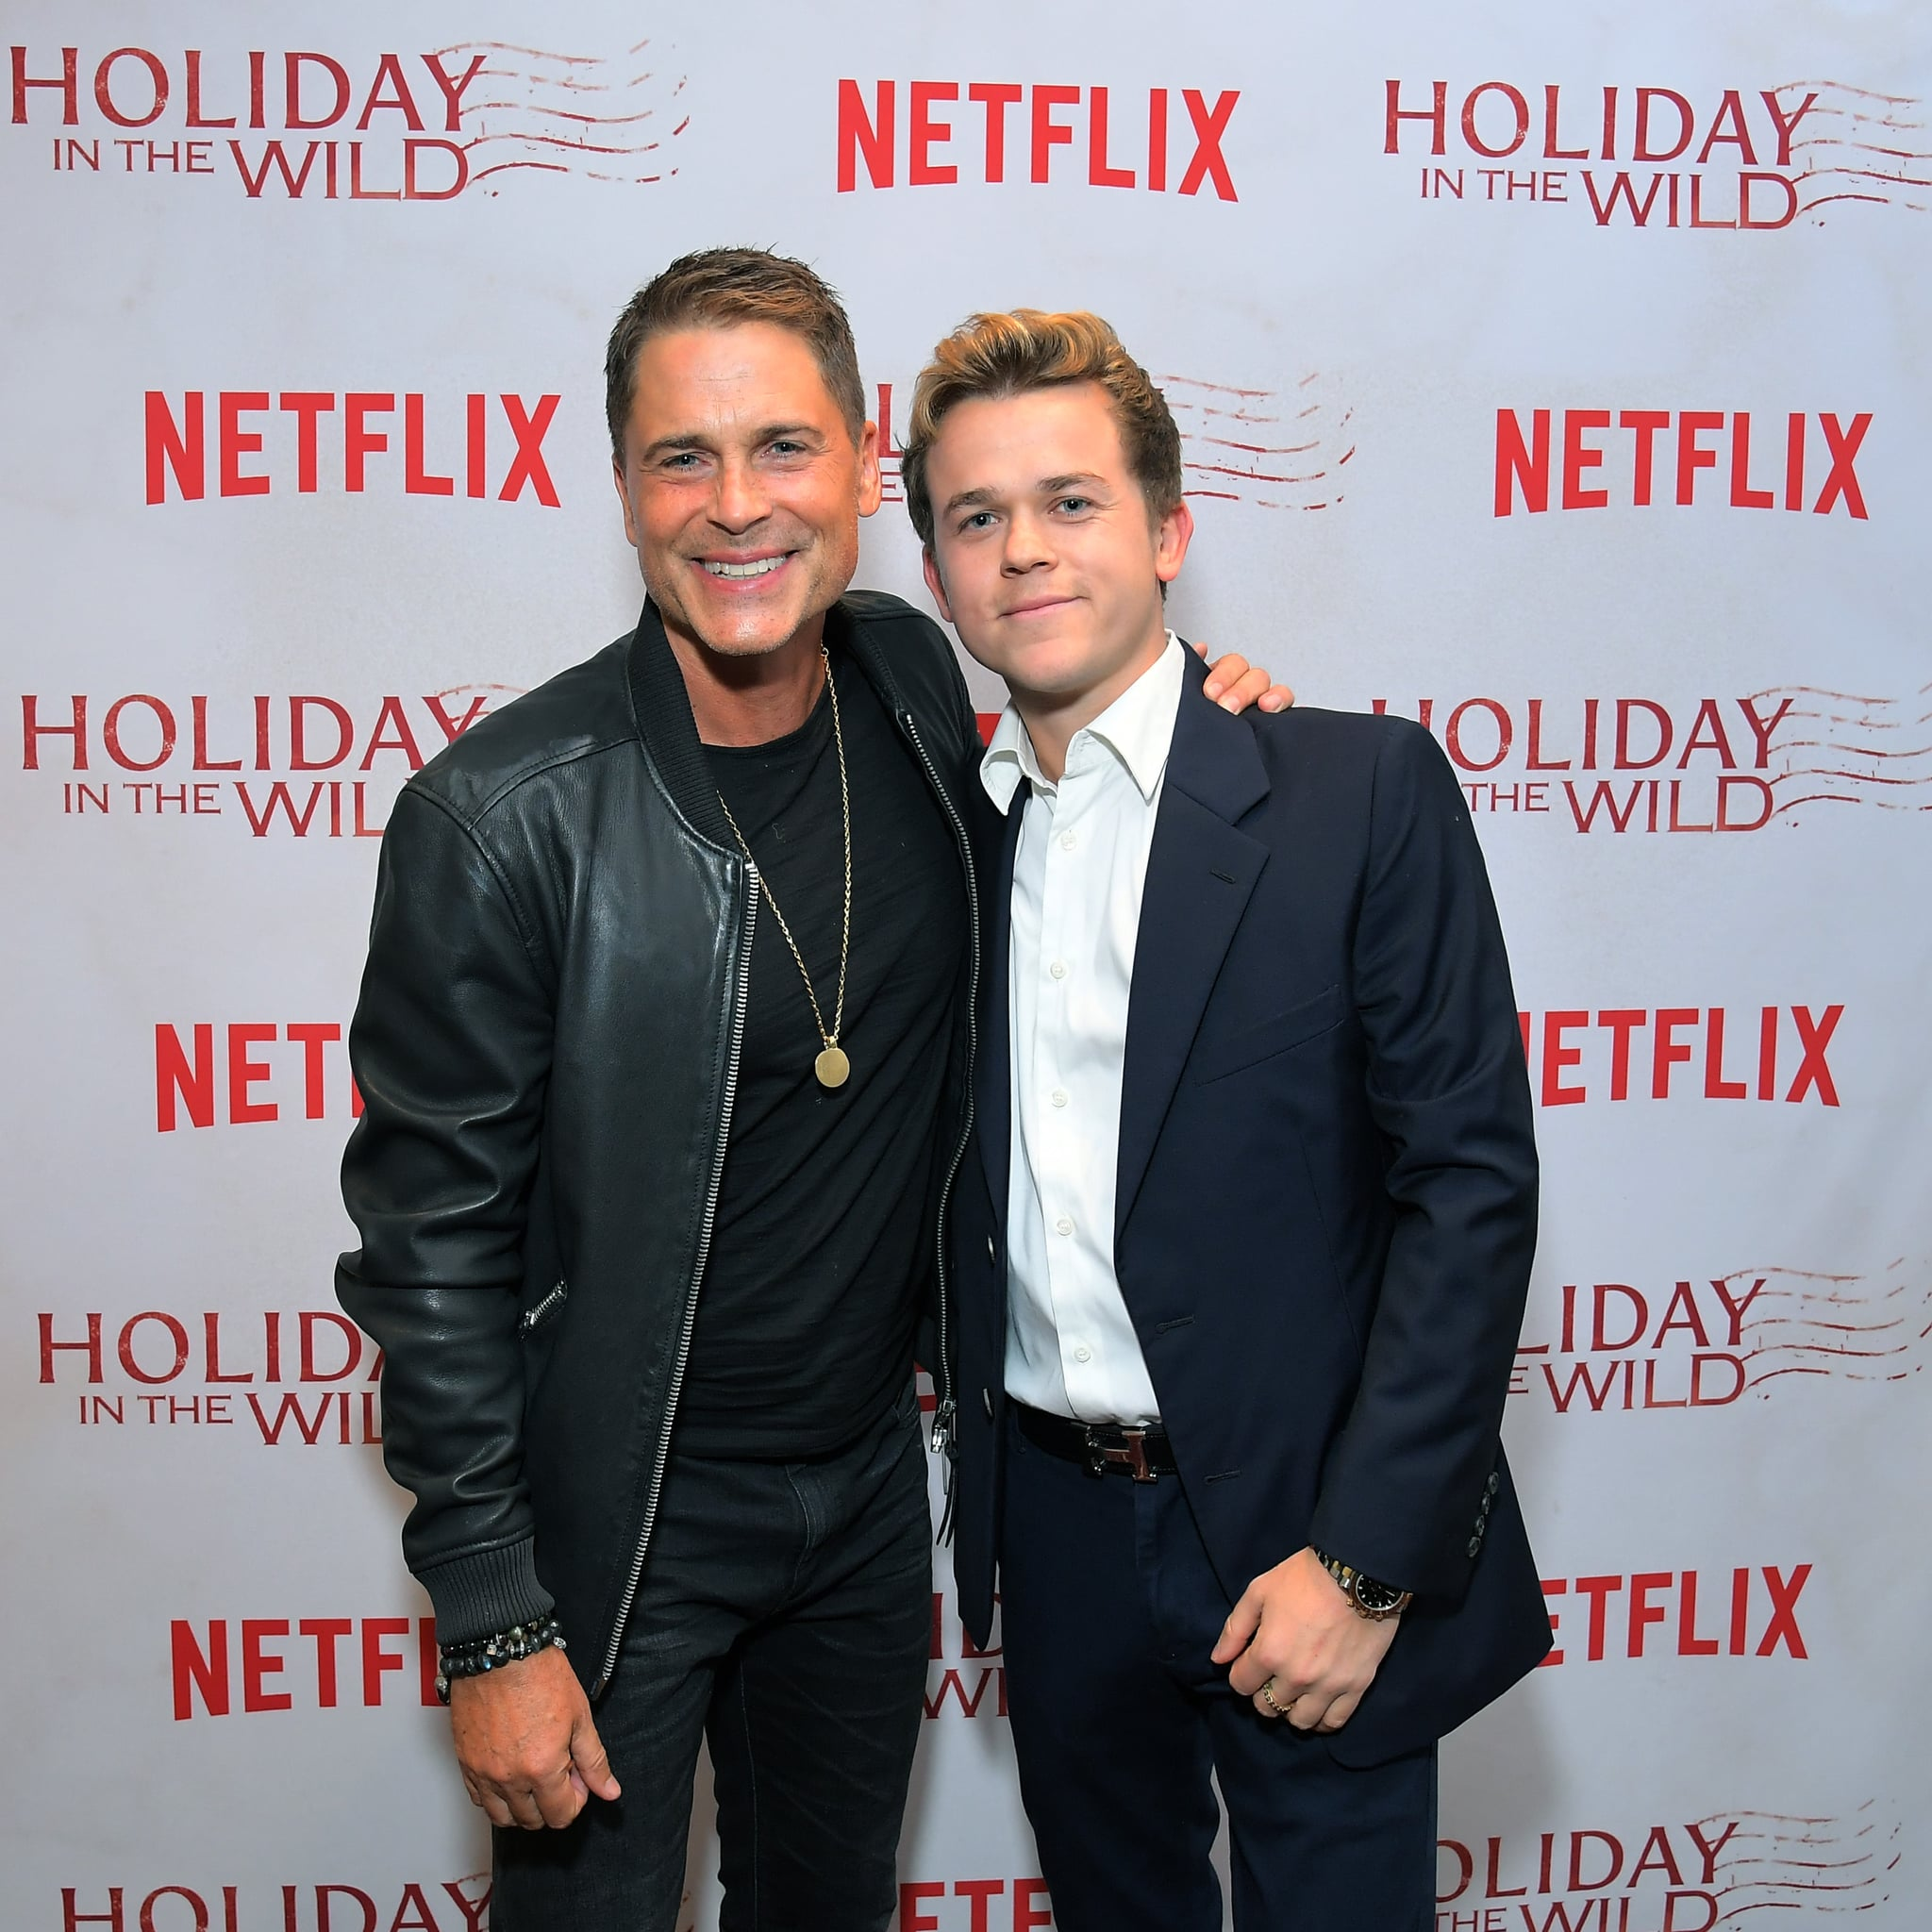 John Owen Lowe and Rob Lowe Cute Pictures | POPSUGAR Celebrity Australia